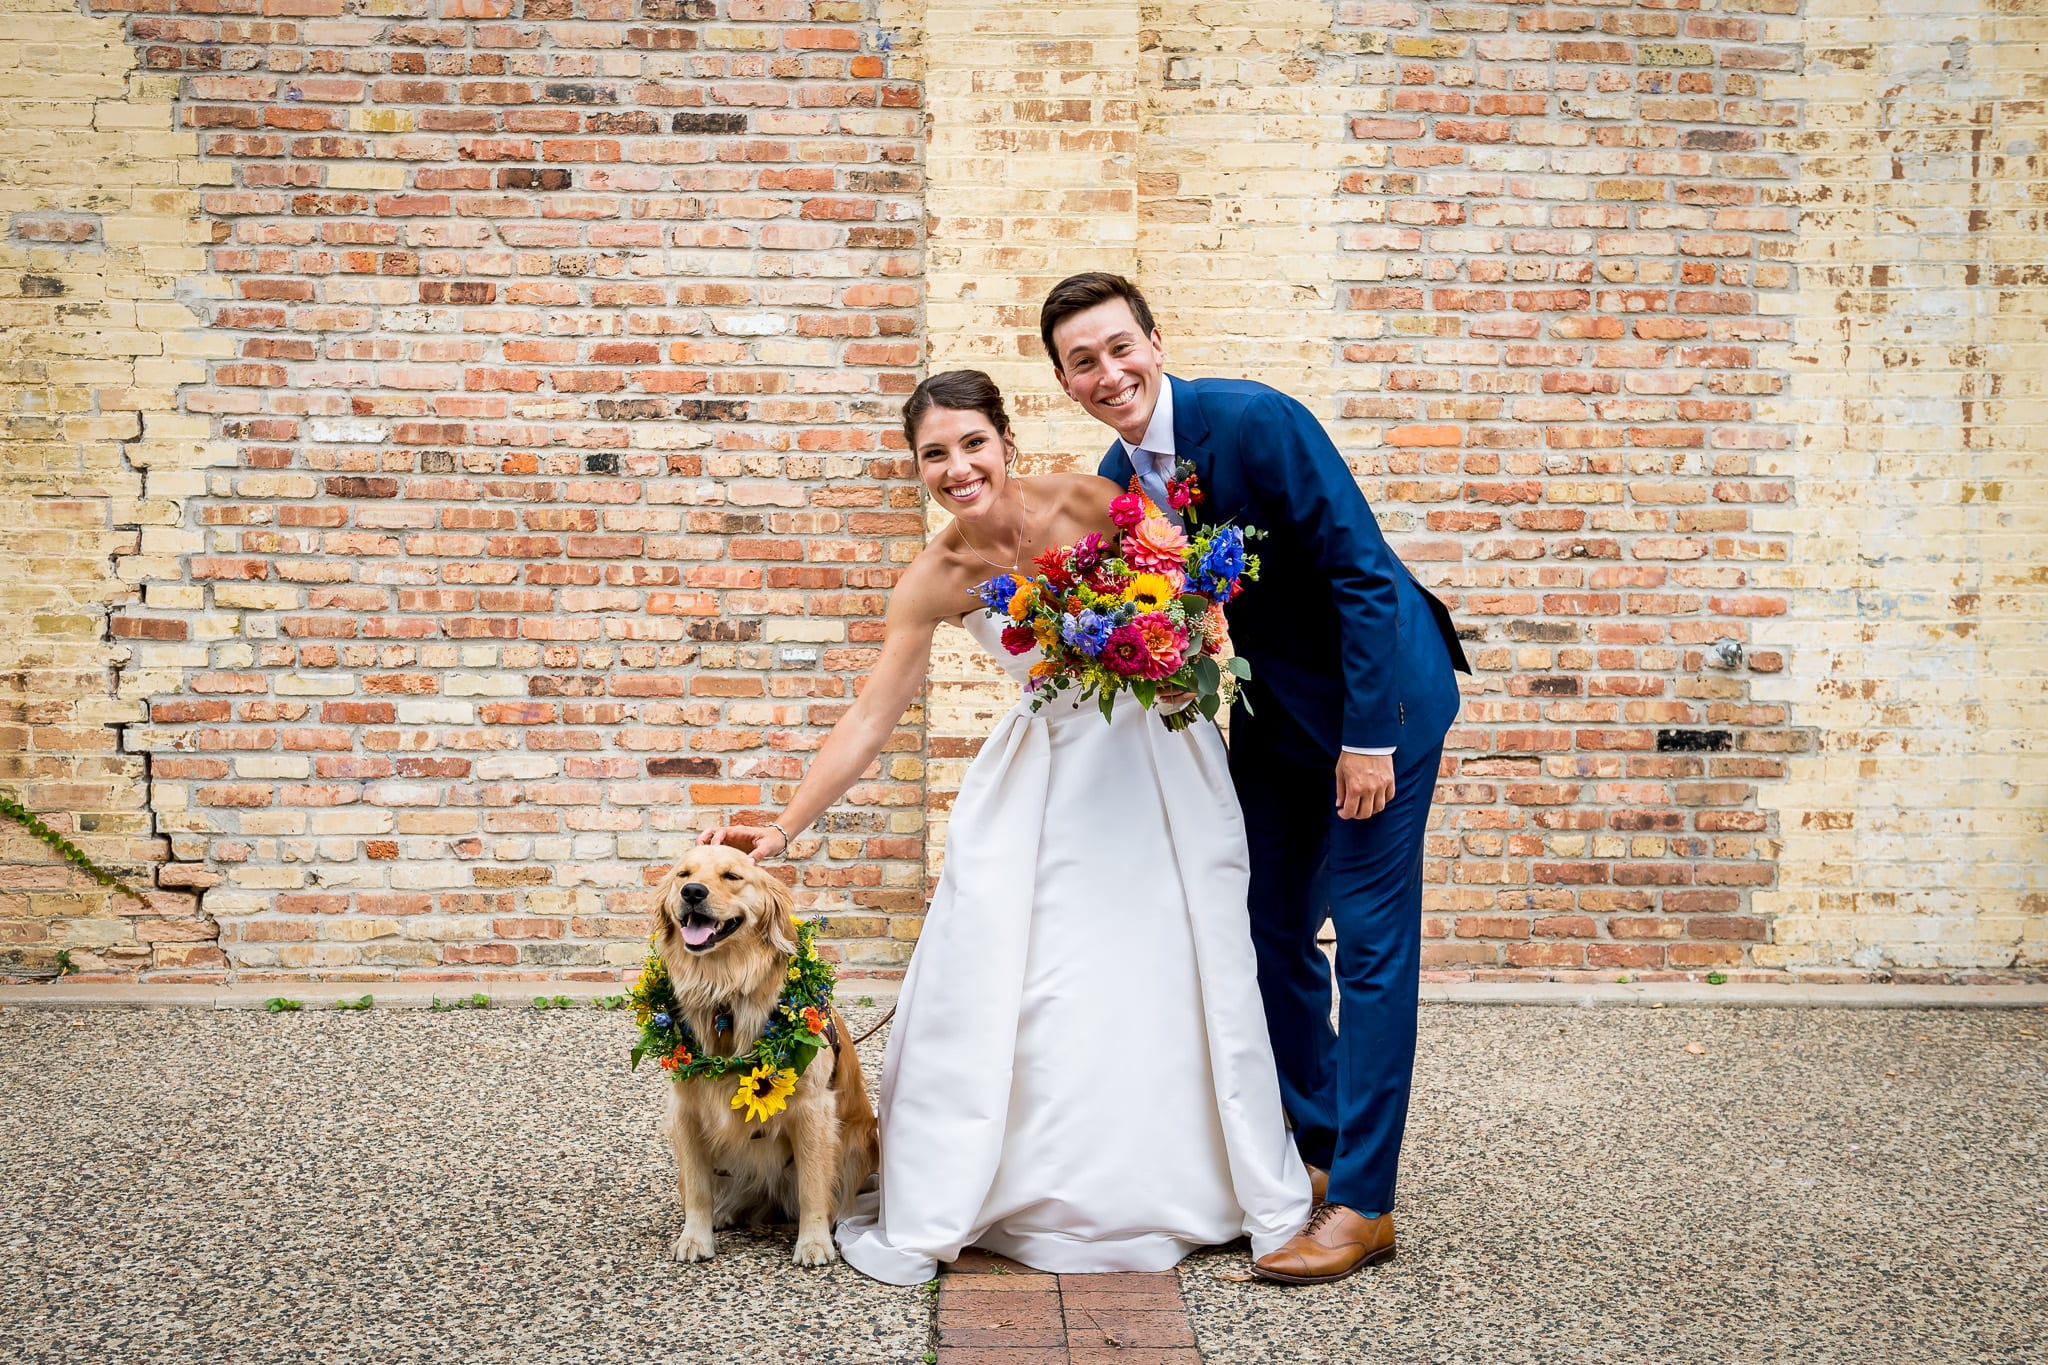 Bride, groom, and their golden retriever posing in front of the brick wall at the Nicollet Island Pavilion on their wedding day